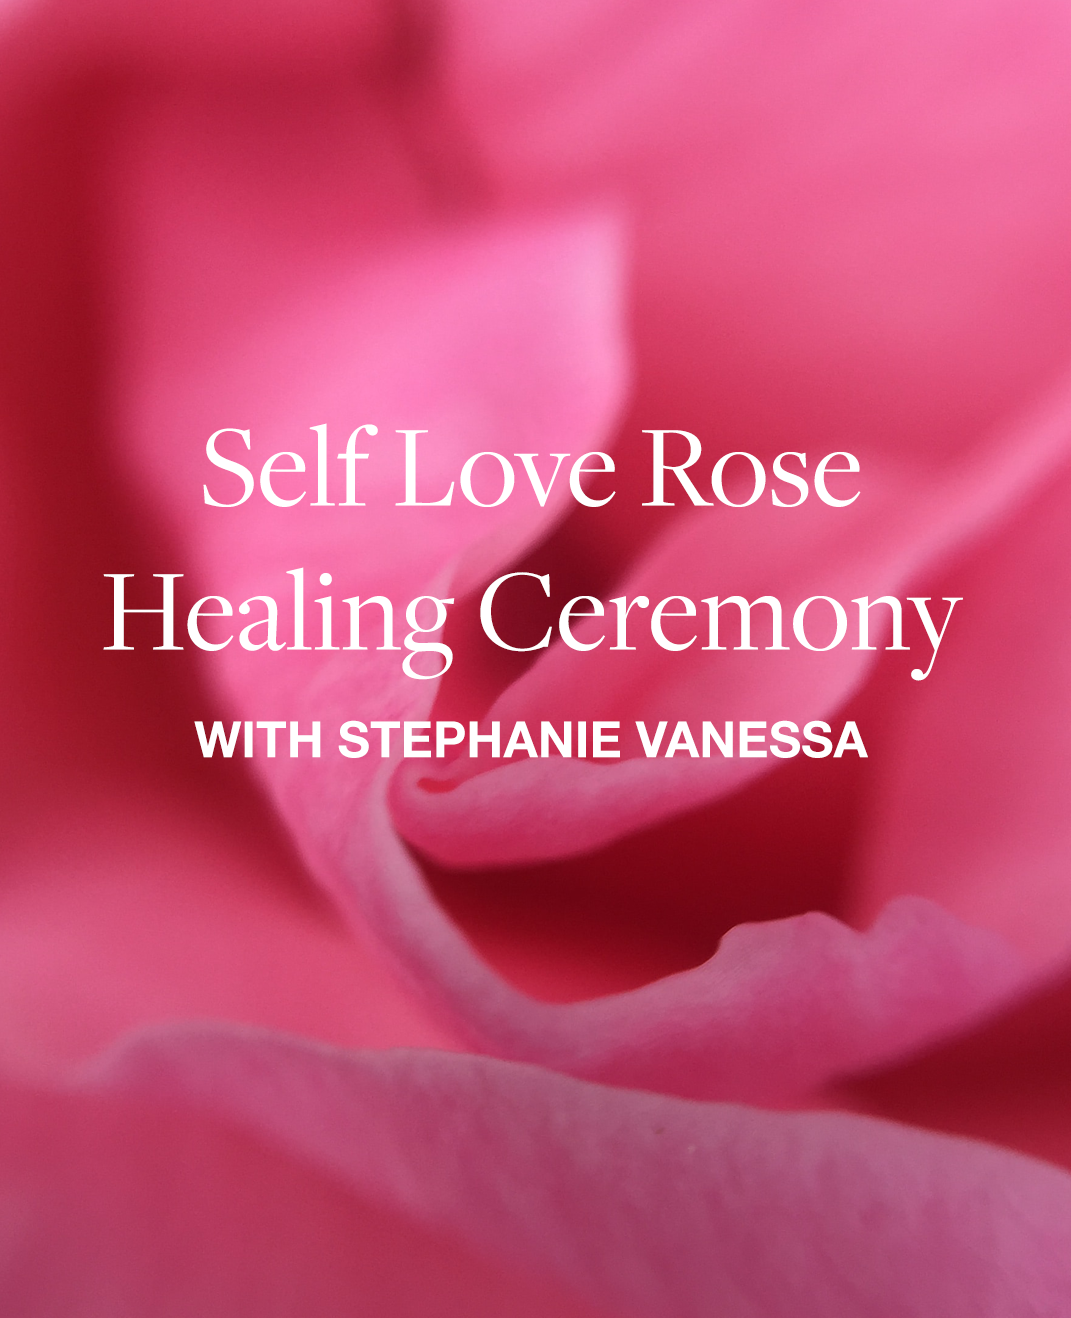 Self Love Rose Healing Ceremony_ with Stephanie Vanessa.png